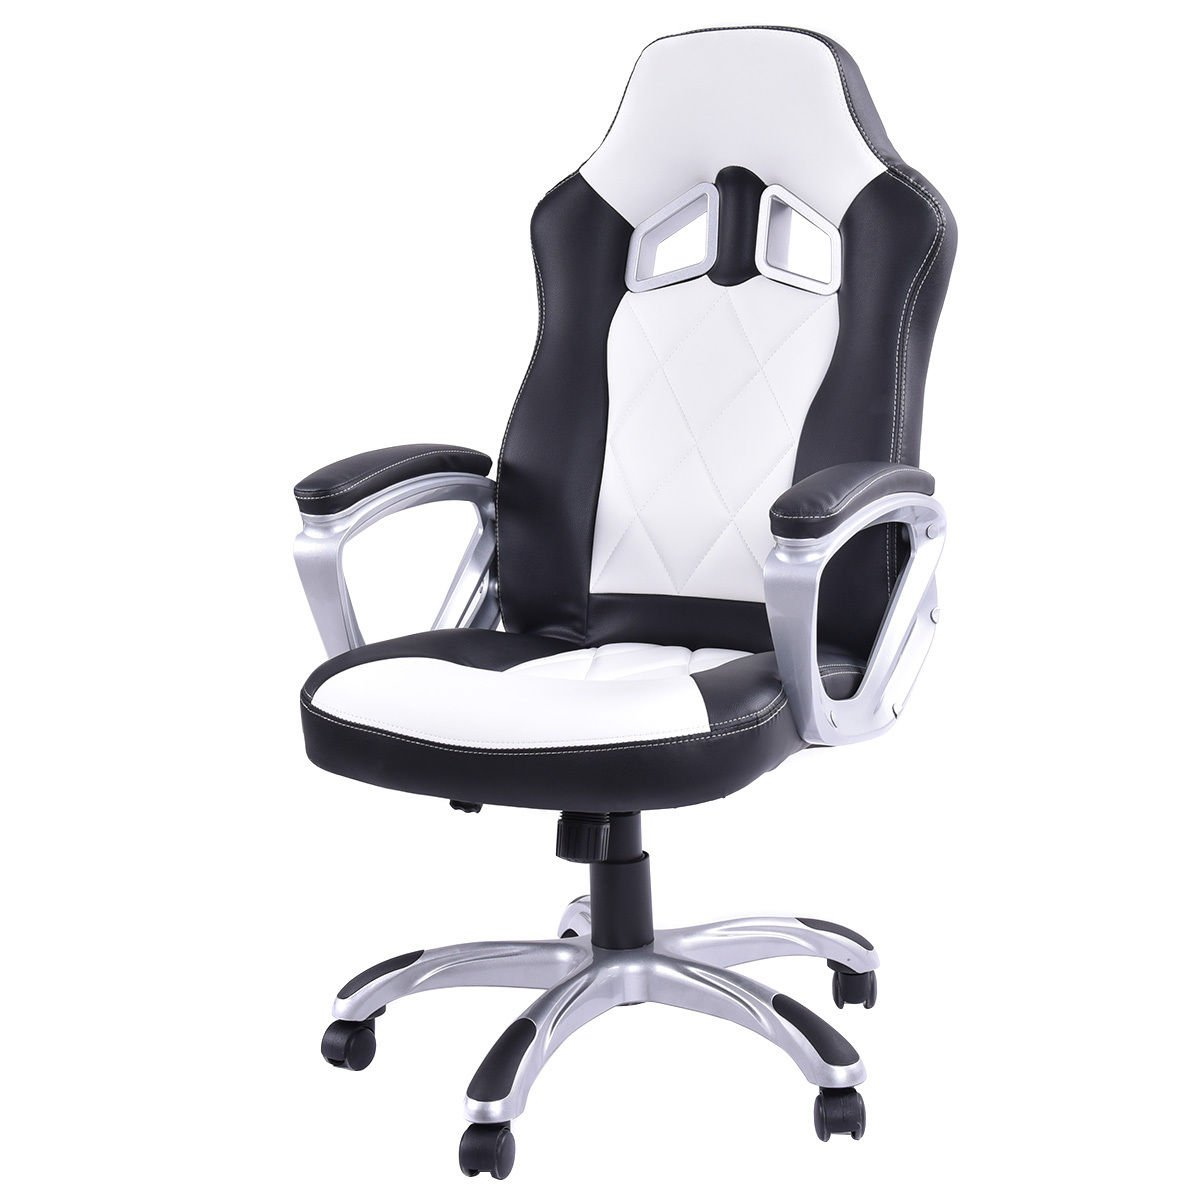 High Back Racing Style Bucket Seat Gaming Chair Swivel Office Desk Task White + FREE E-Book by Eight24hours